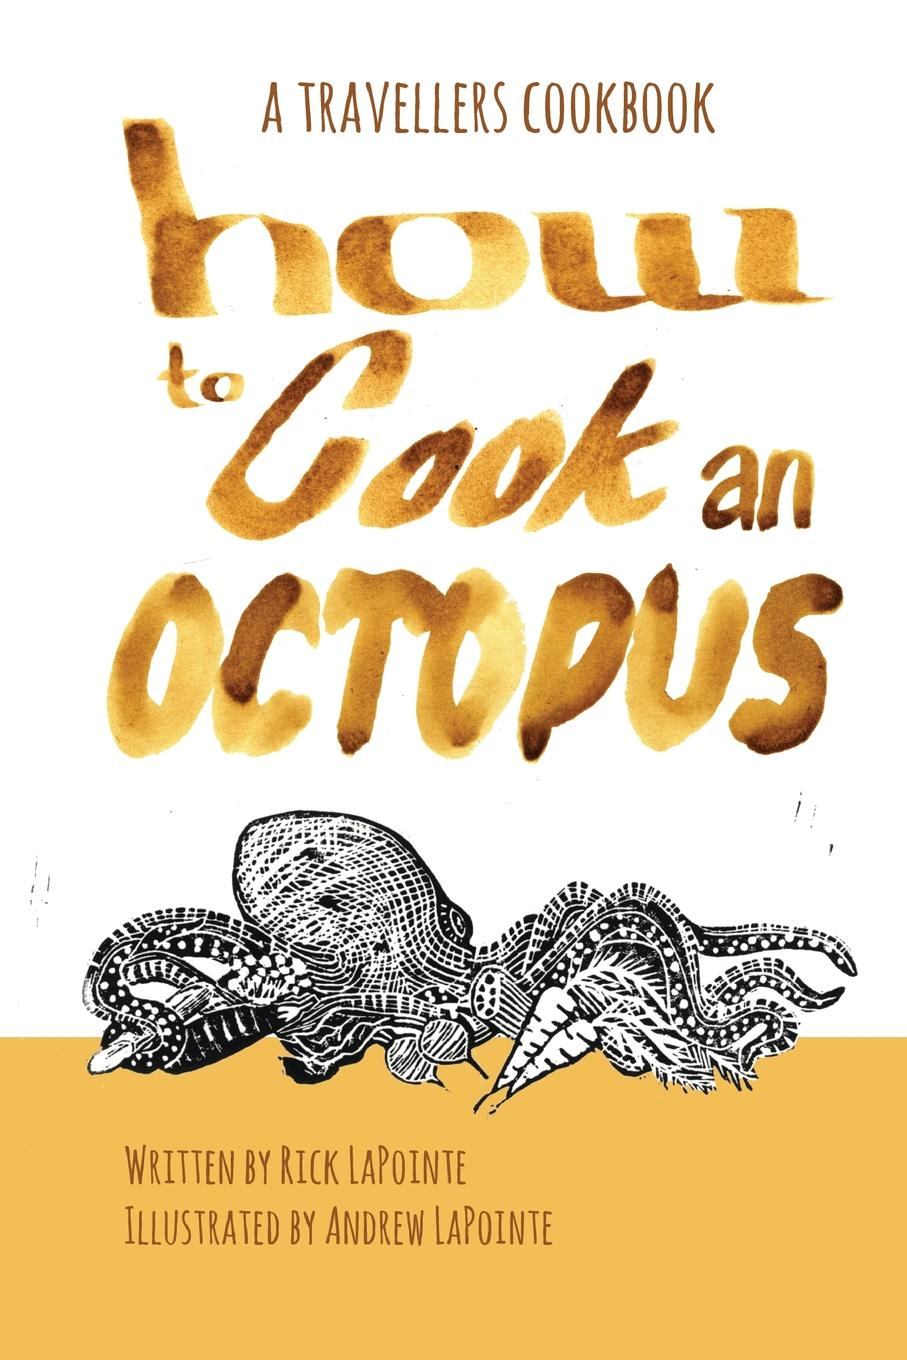 Rick LaPointe How to Cook an Octopus cook it step by step